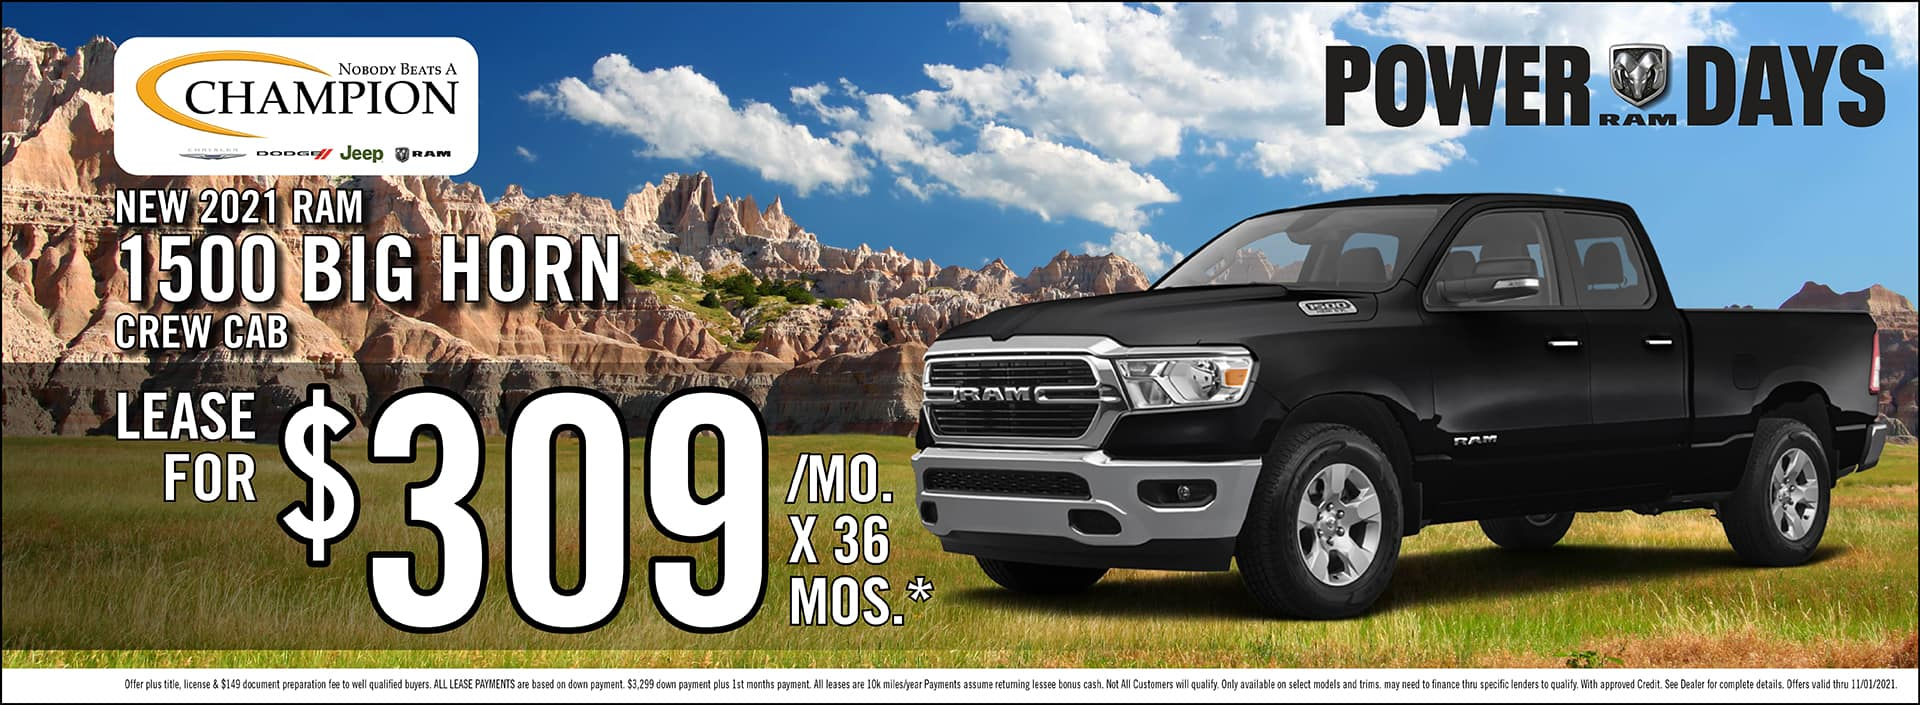 New 2021 Ram 1500 Big Horn Crew Cab Lease Offer